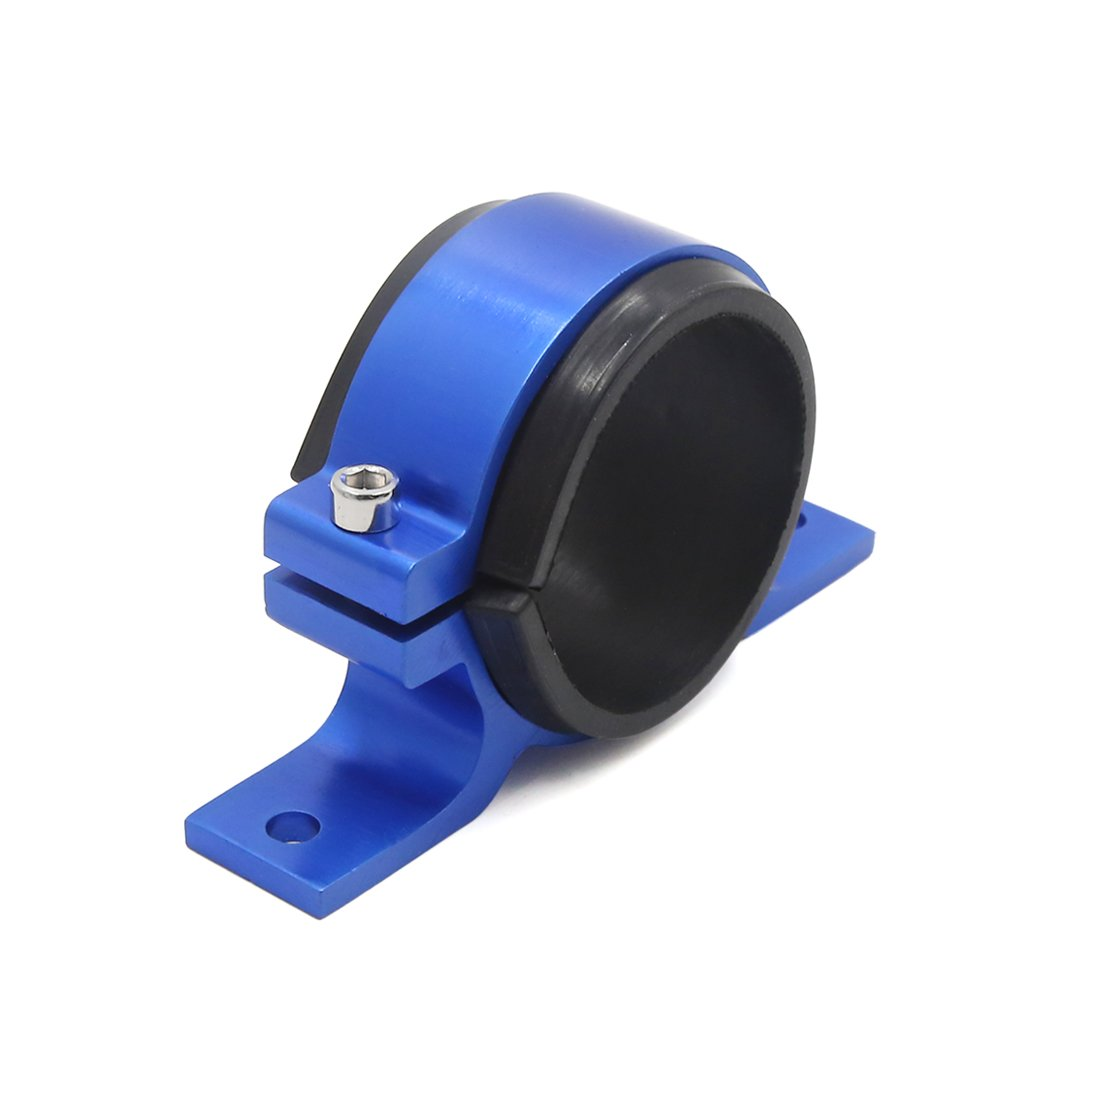 uxcell Blue Aluminum Alloy Fuel Pump Mounting Bracket Clamp Cradle for Car Automobile by uxcell (Image #3)